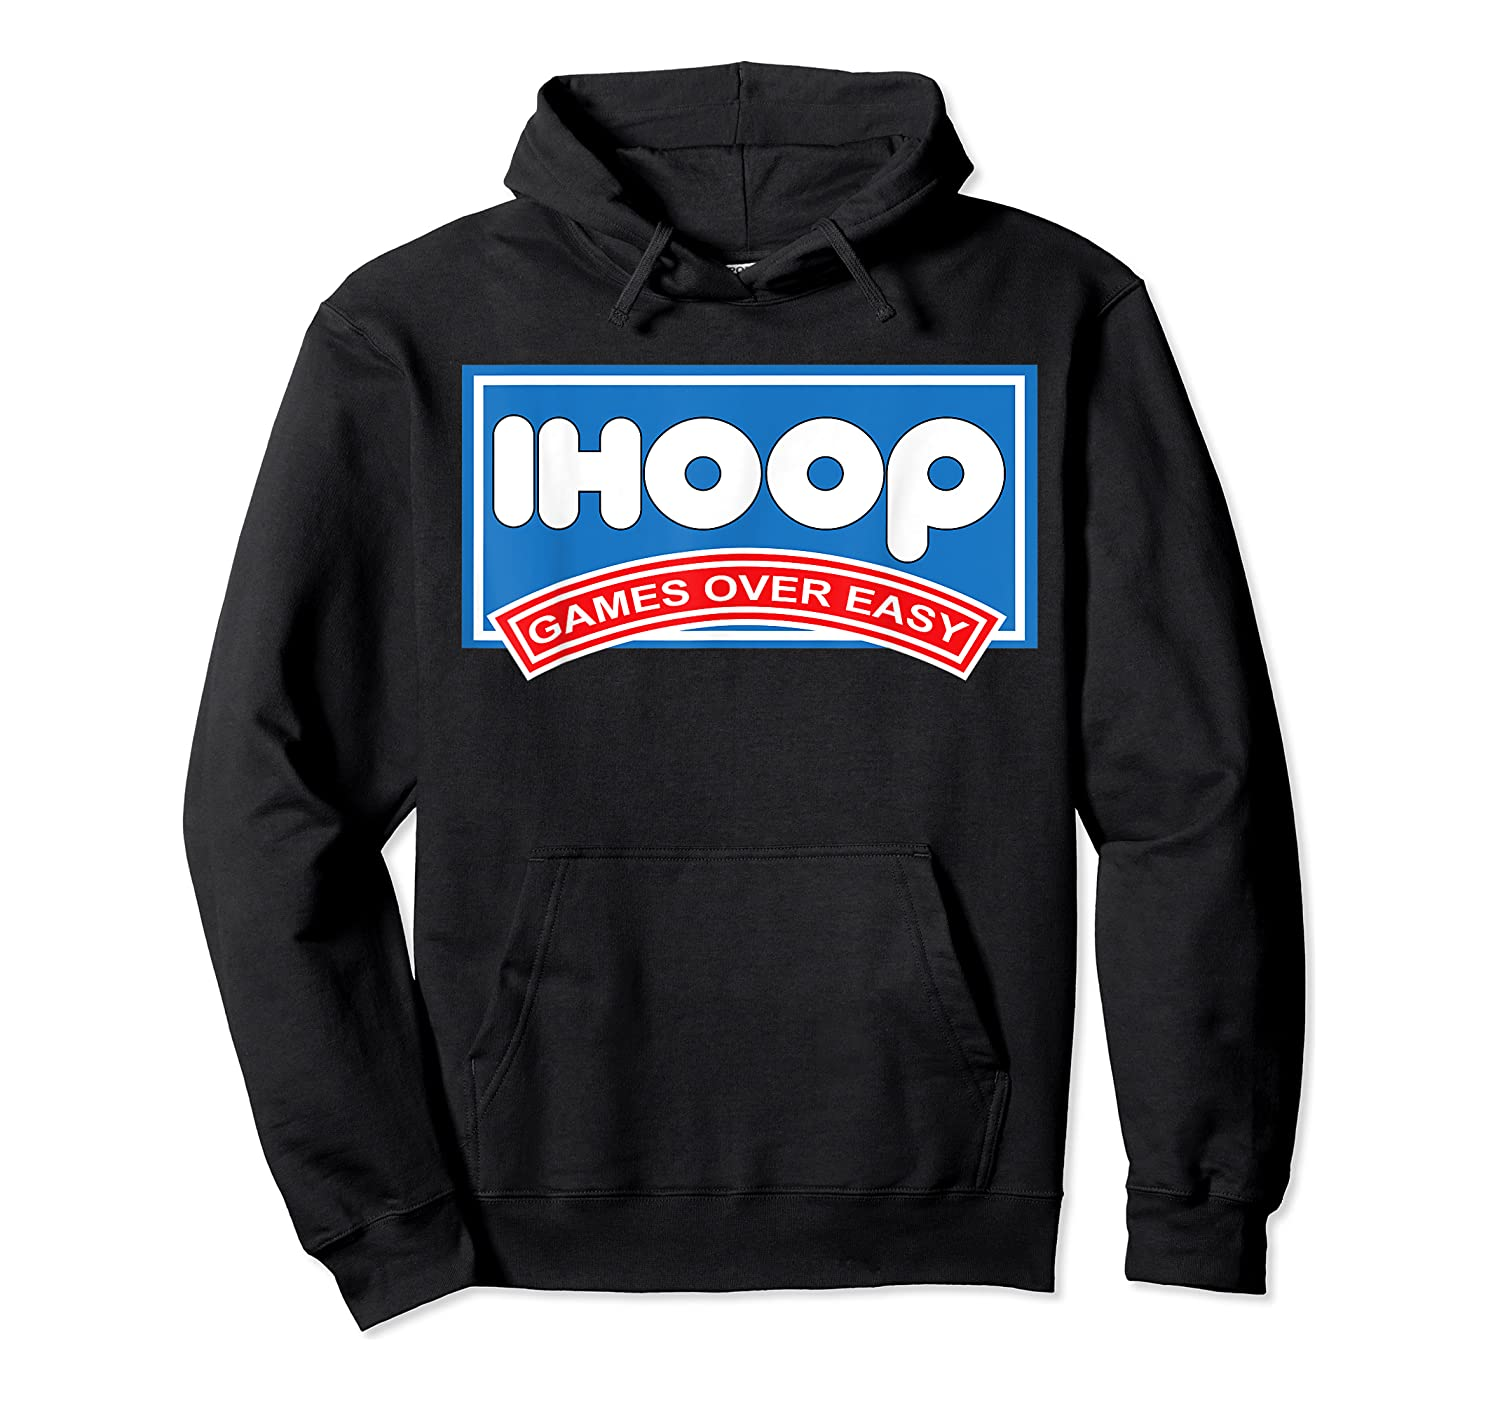 Ihoop Fun Basketball Shirt - Games Over Easy Graphic T-shirt Unisex Pullover Hoodie